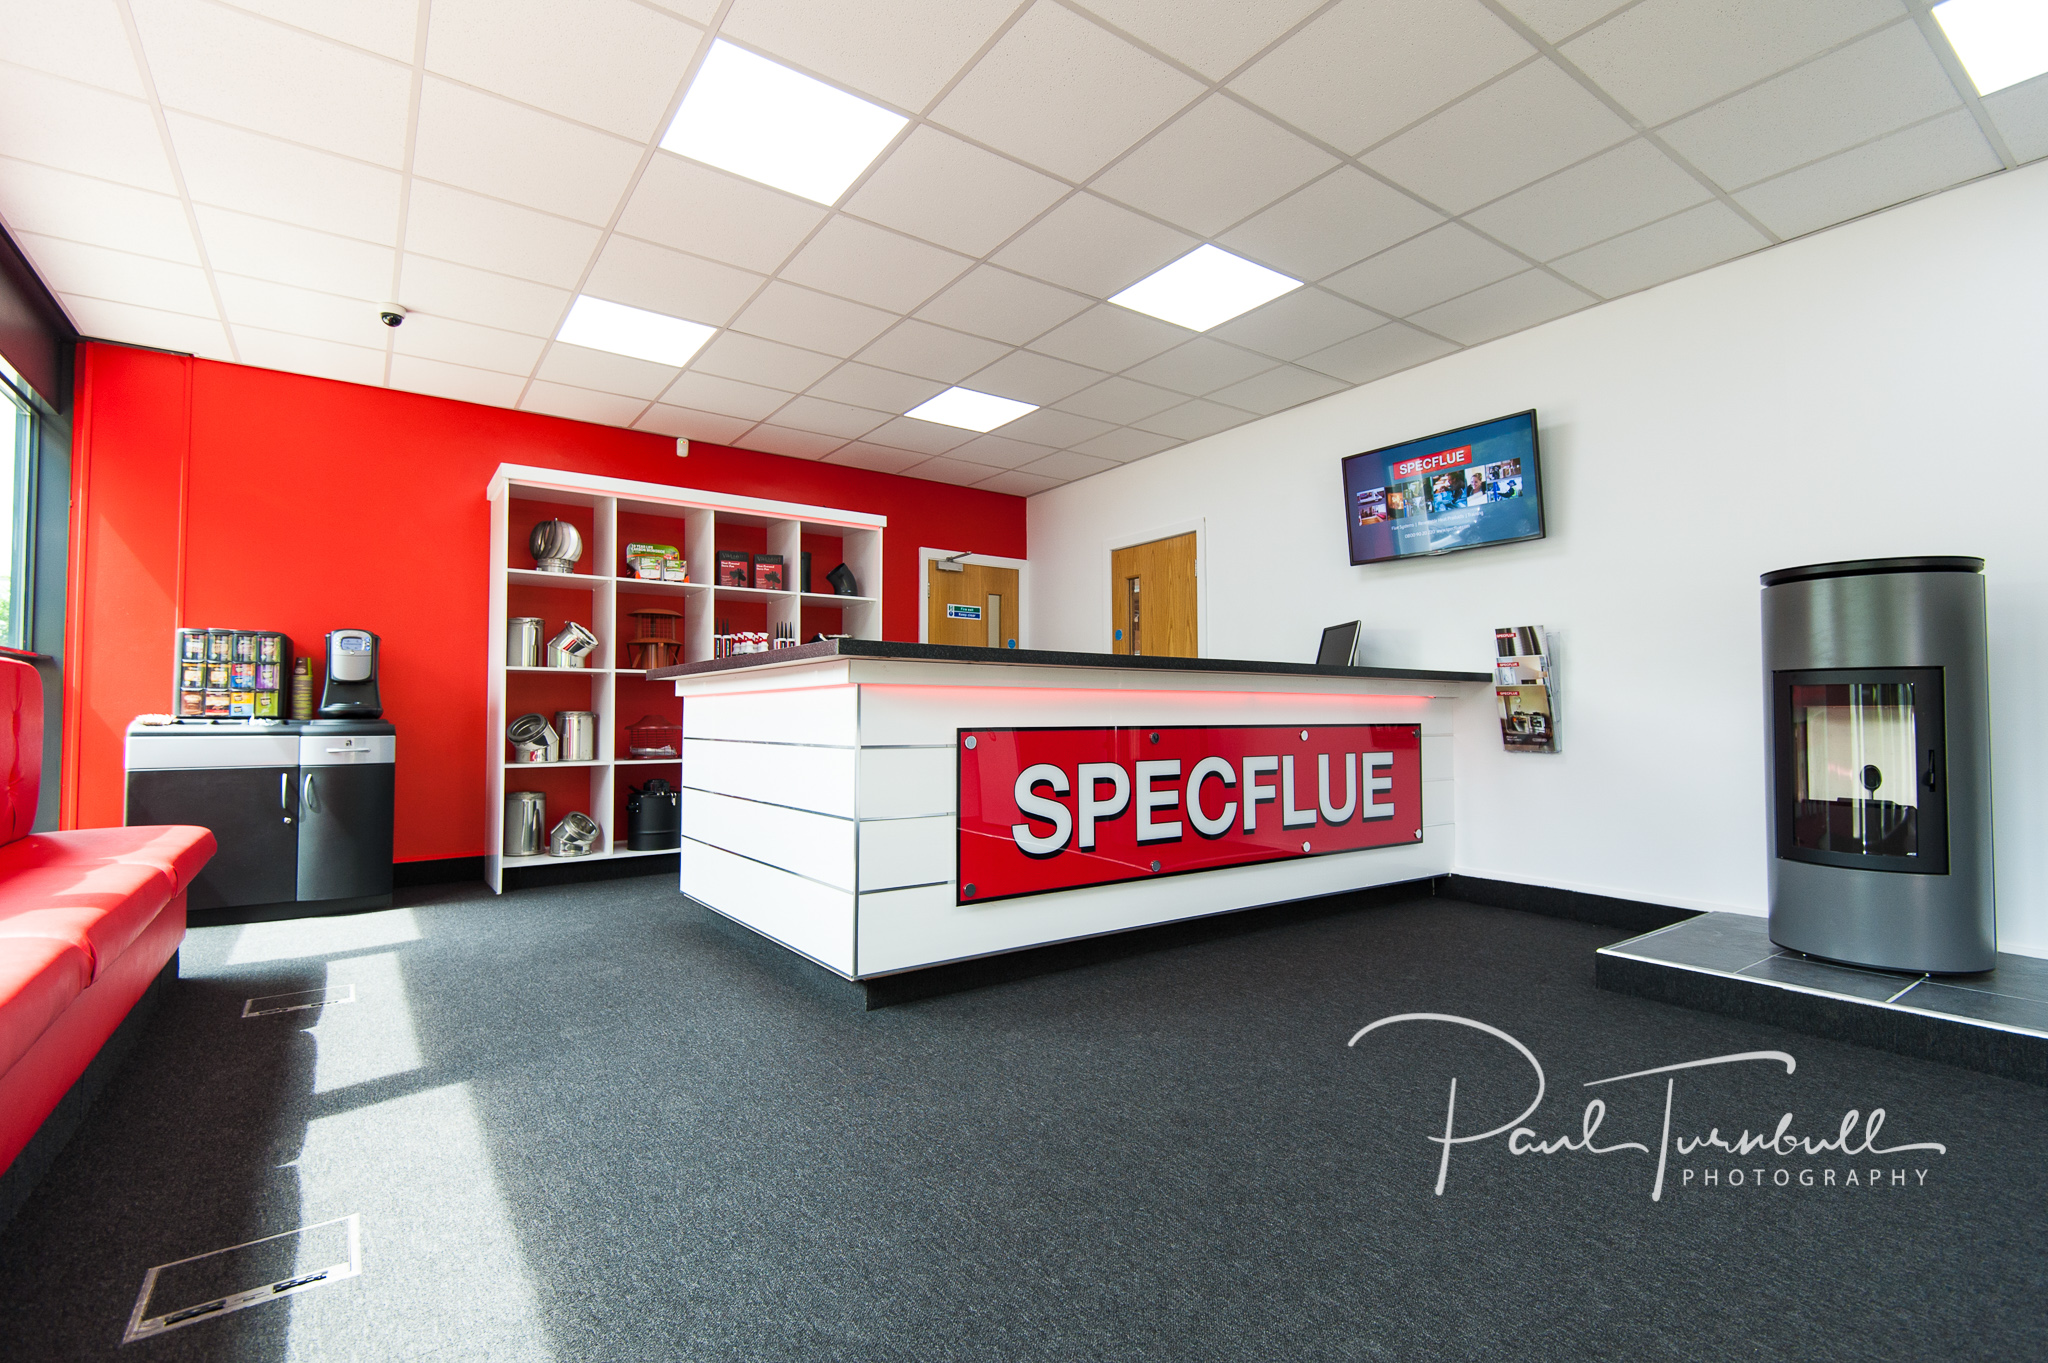 commercial-pr-photographer-leeds-yorkshire-specflue-001.jpg